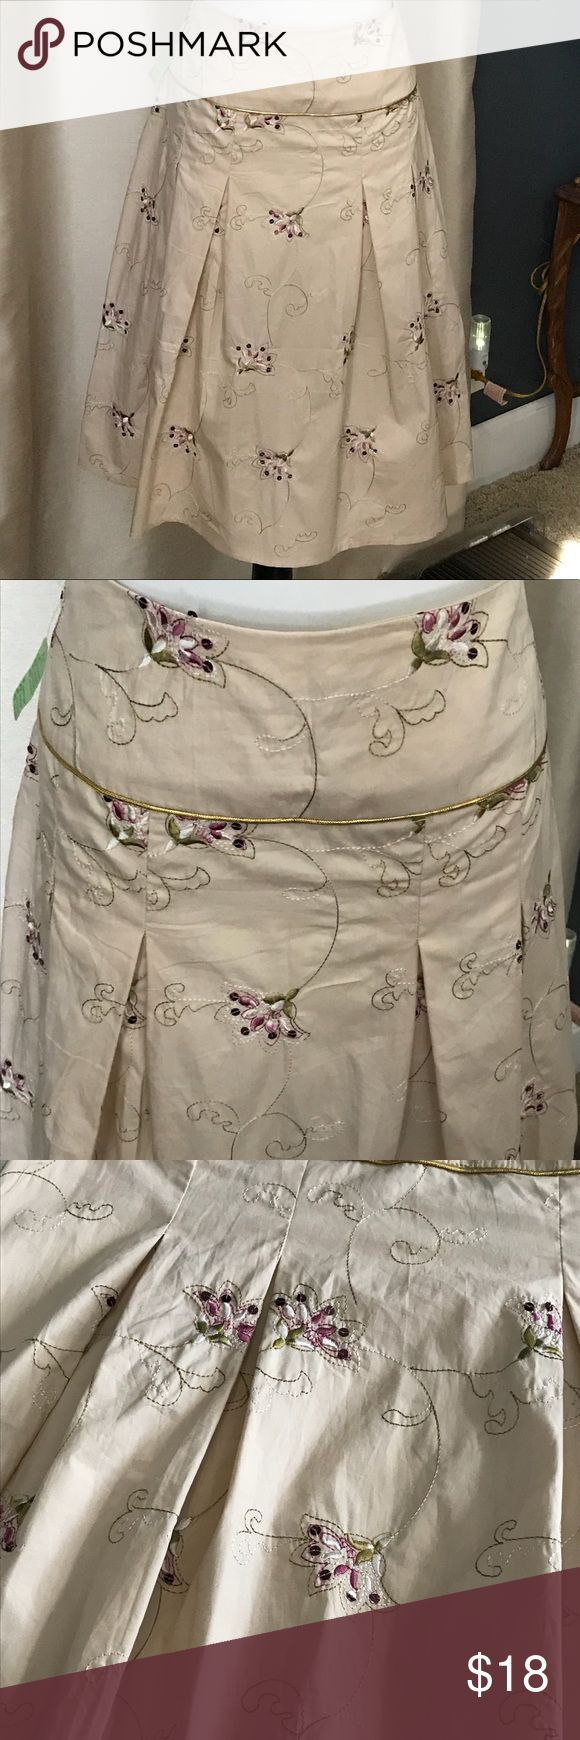 A line pleated skirt. Sequin and embroidery Cutest A Line pleated skirt with delicate embroidery and small sequin in the flower to add sparkle. Waist band has a gold detailing. Never been worn. New with tags. Skirts A-Line or Full